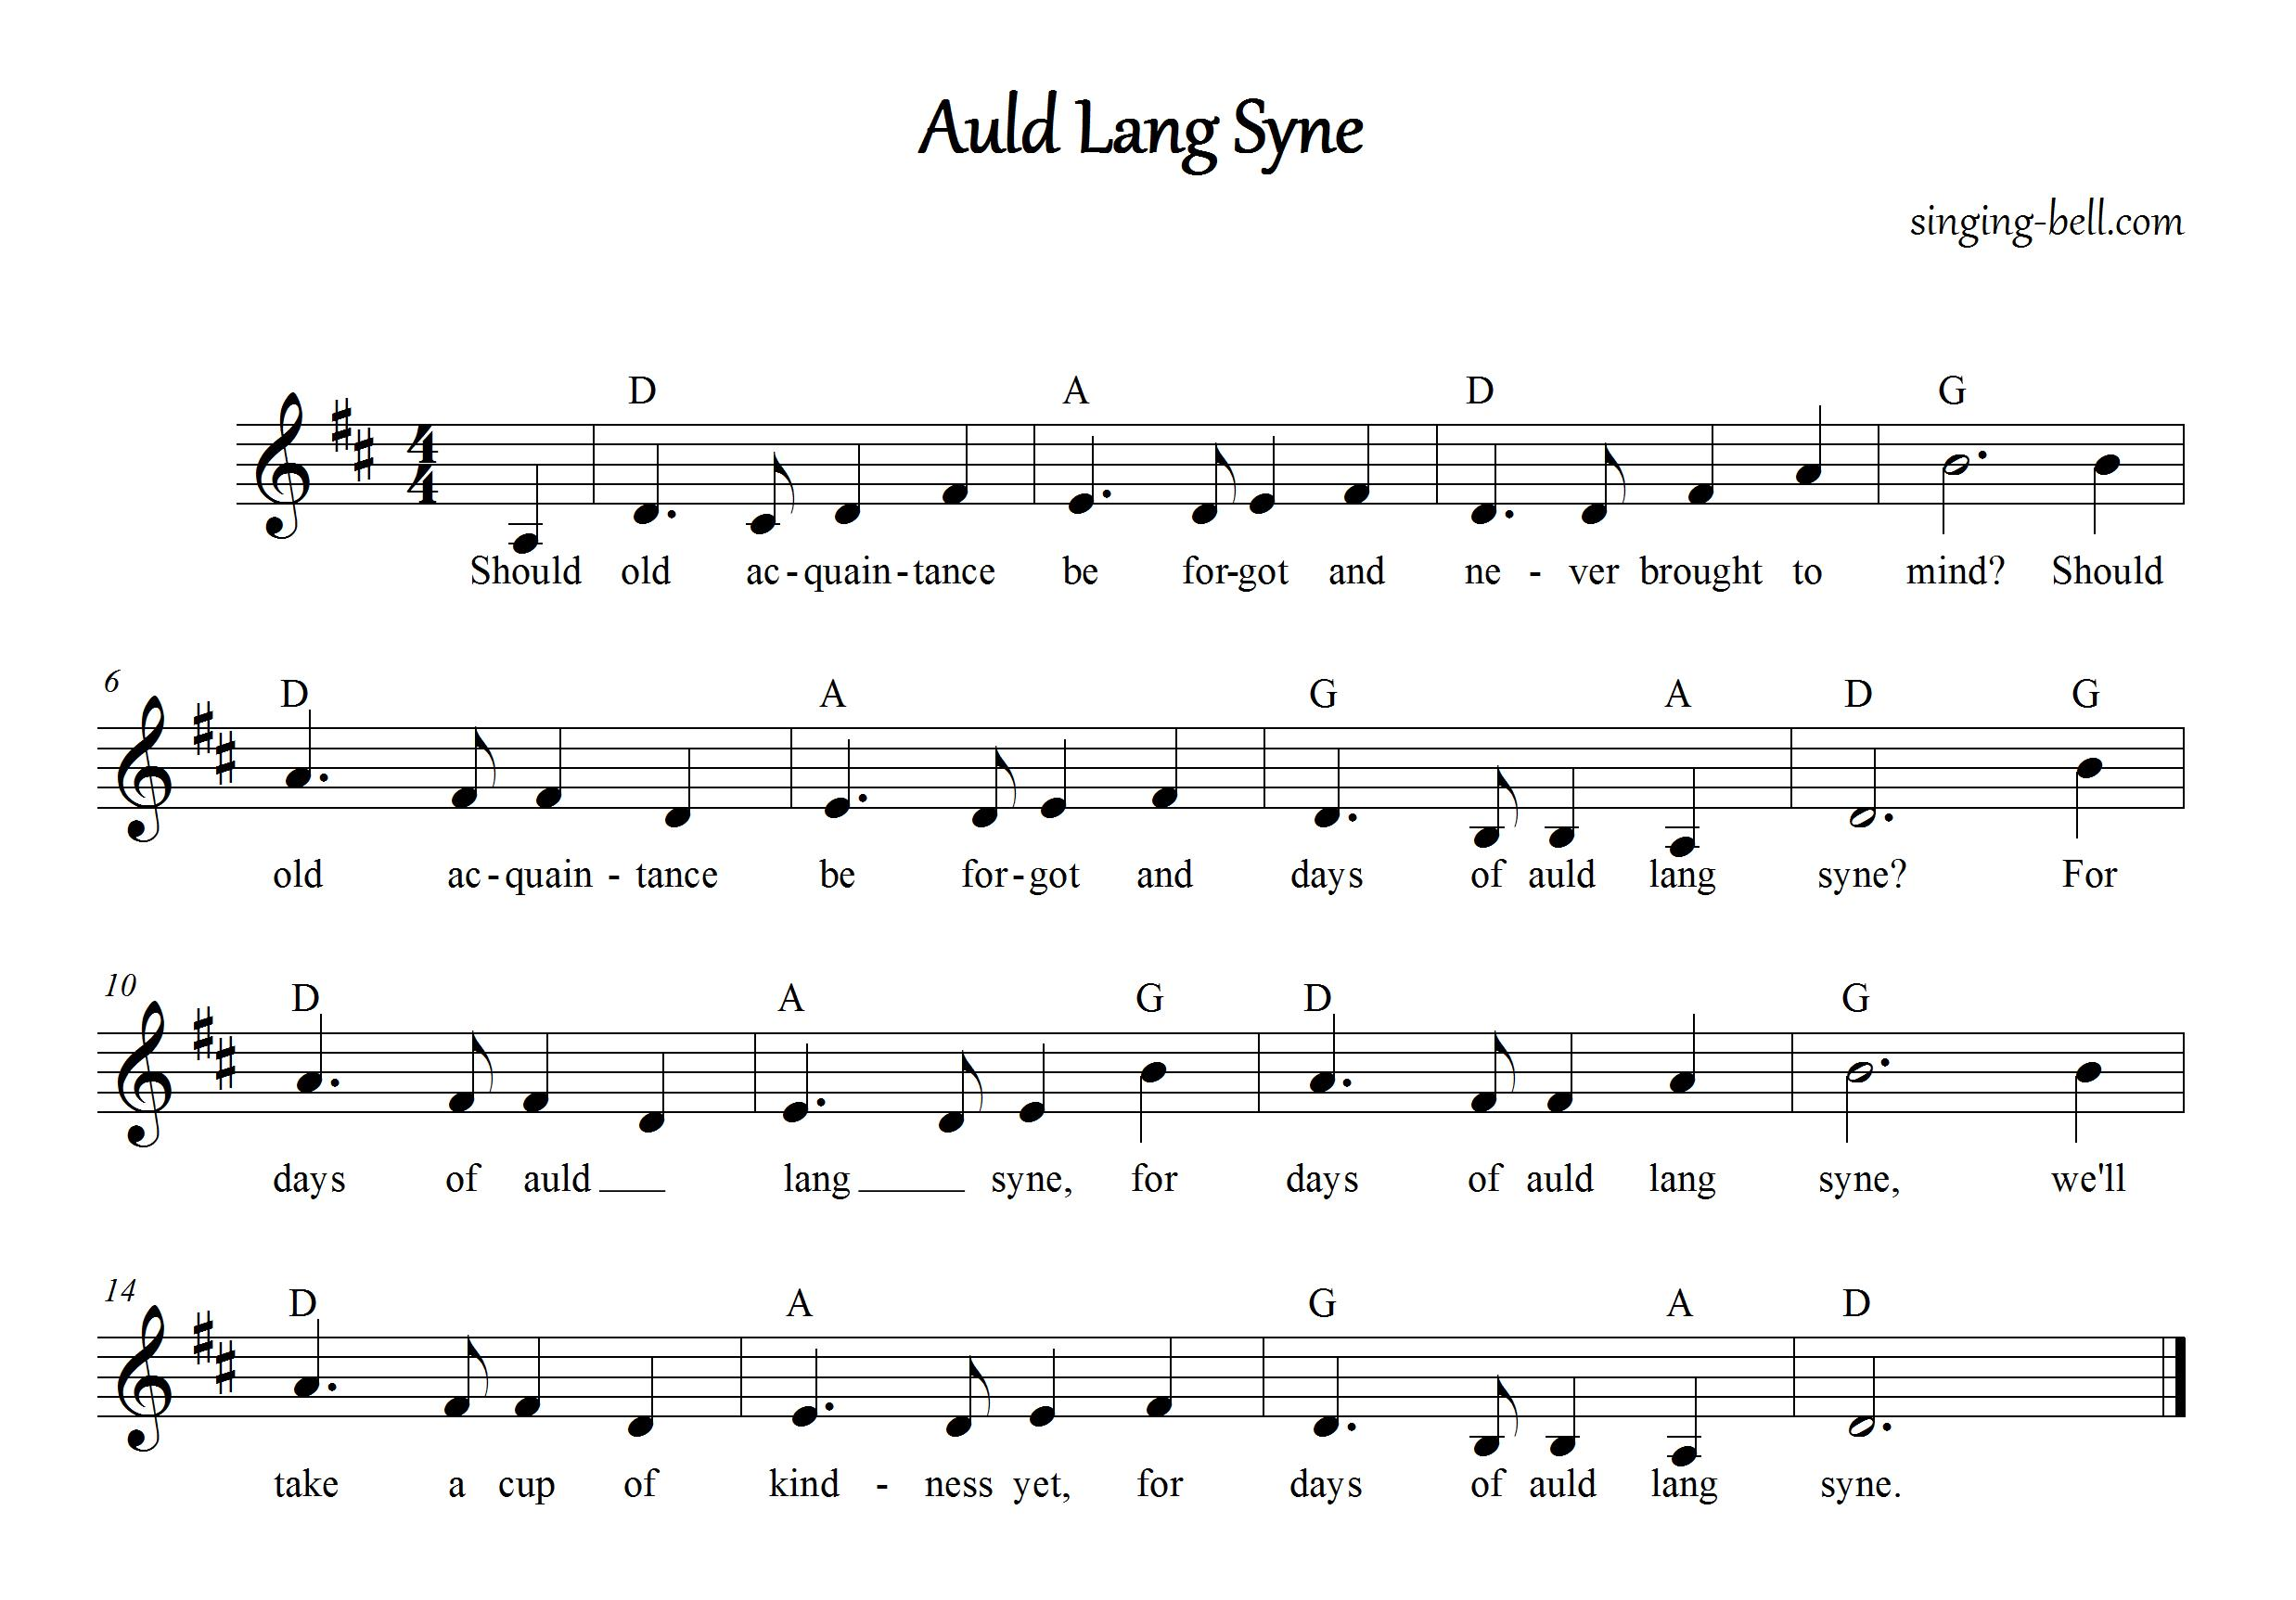 Beautiful Christmas Songs Free Mp3 Download #5: Auld-Lang-Syne_Singing-Bell.jpg